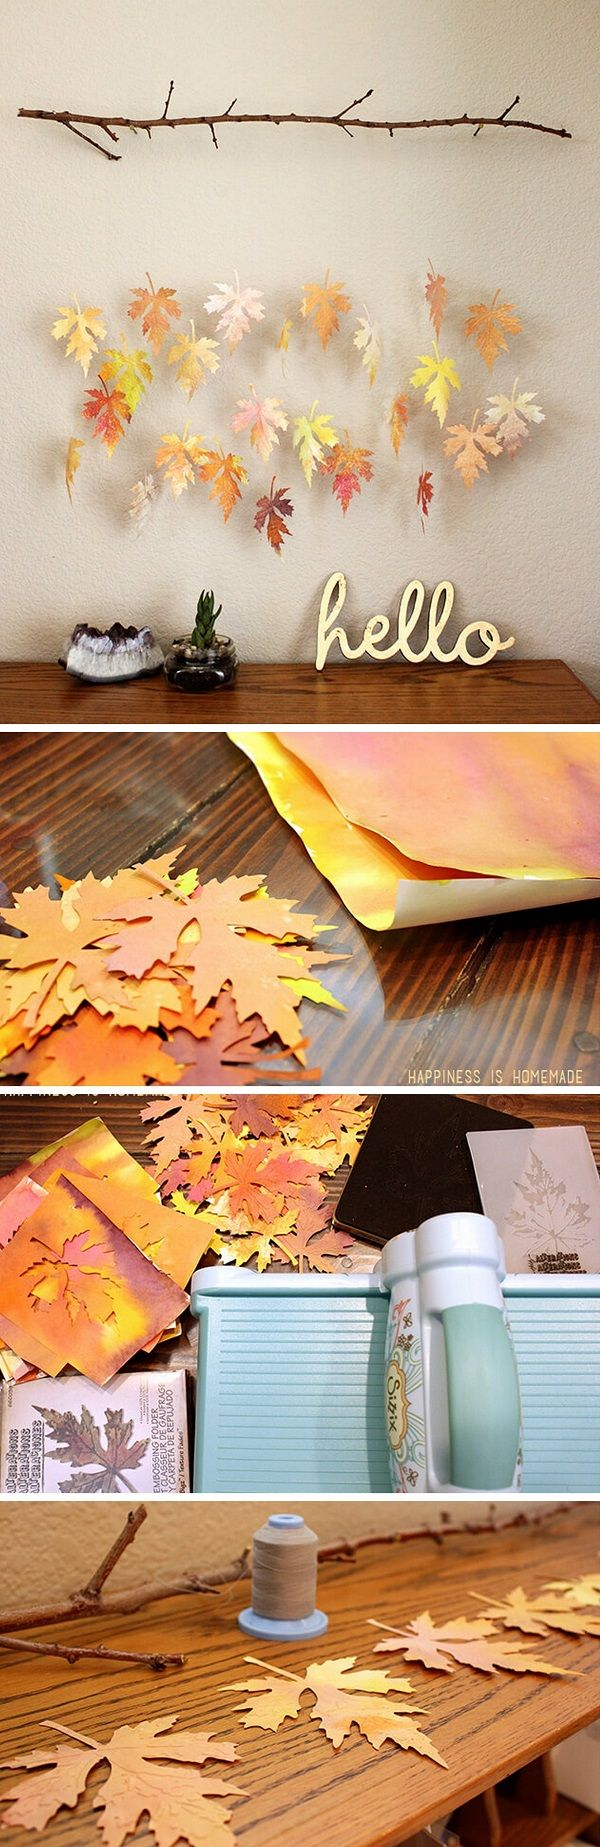 It is made out of paper and a branch. If you are looking a project to do with your kids, then this really kids friendly, and extra hands will come handy. Check out the tutorial that shows you how to make this.